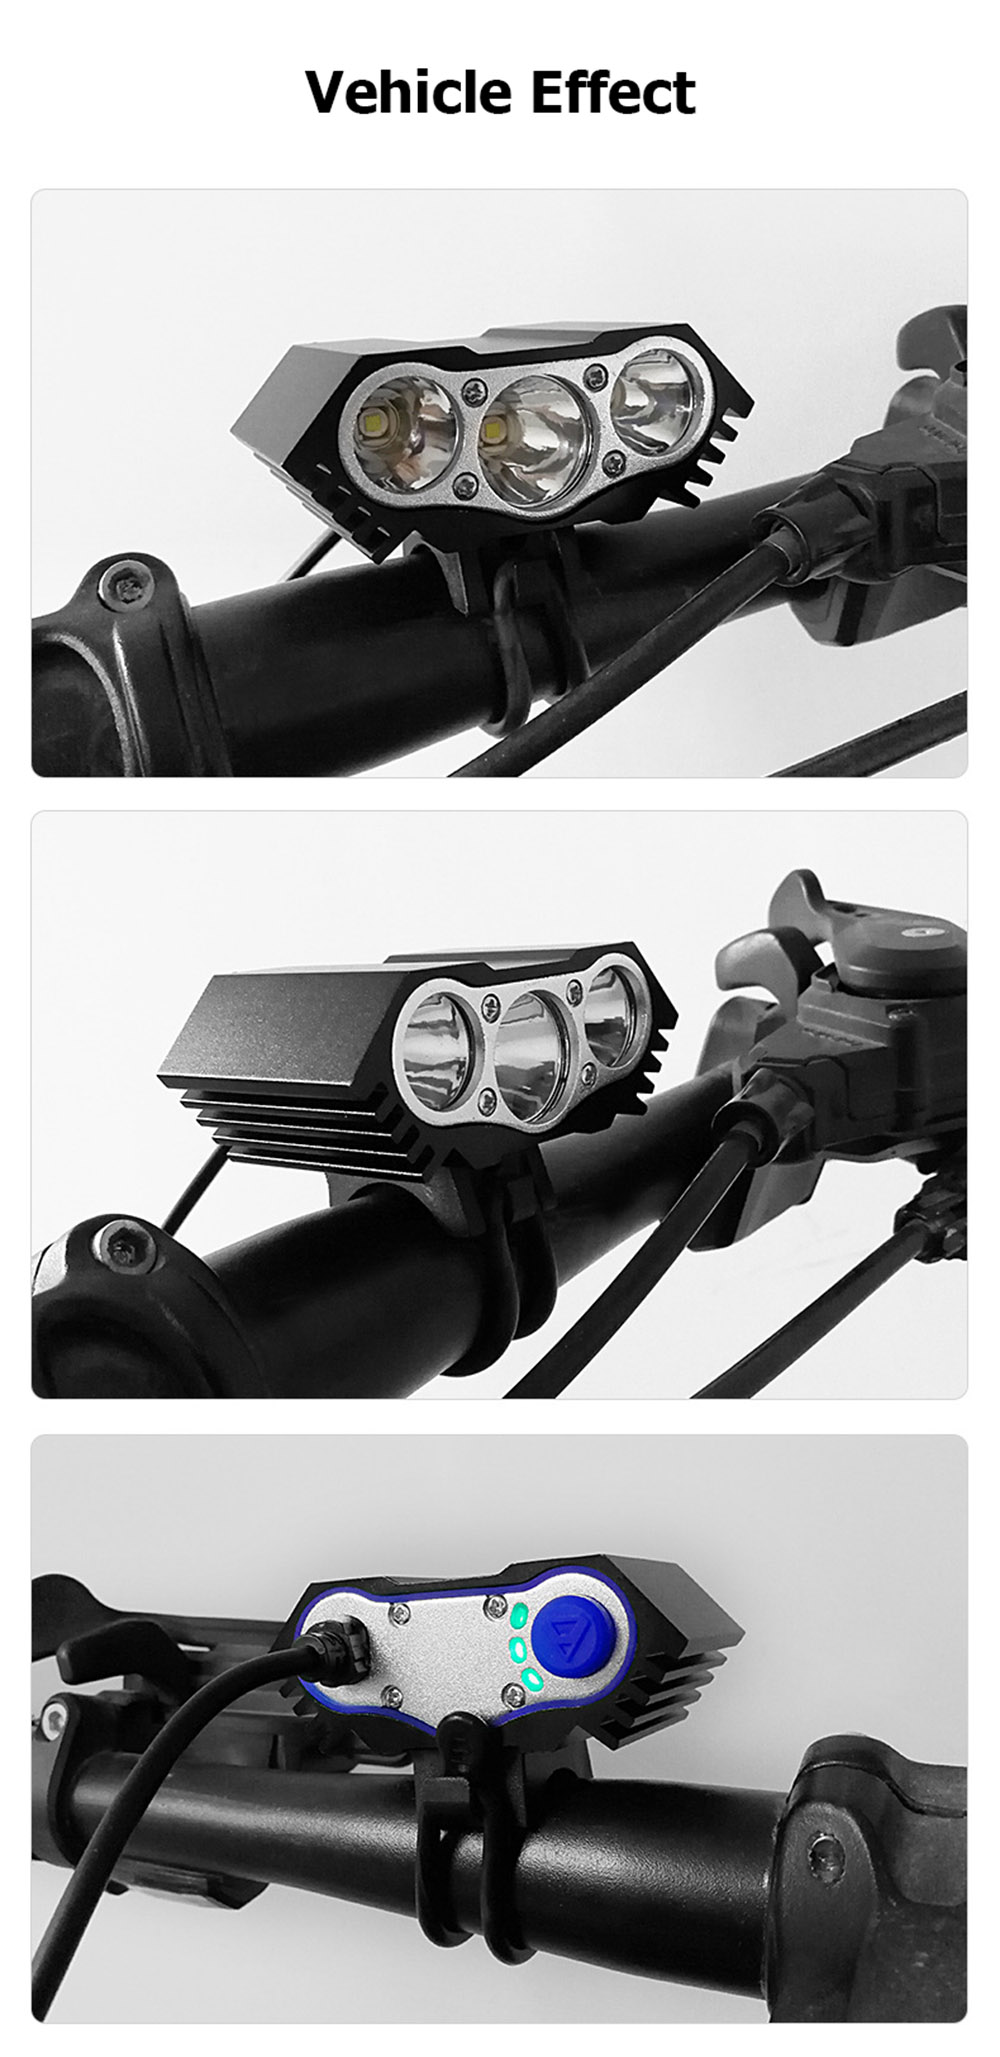 12000 Lumens Bicycle Front Light 3xT6 LED Outdoor MTB Road Bike Headlight Waterproof Safe Cycling Lamp With Battery Pack BC0533 (5)